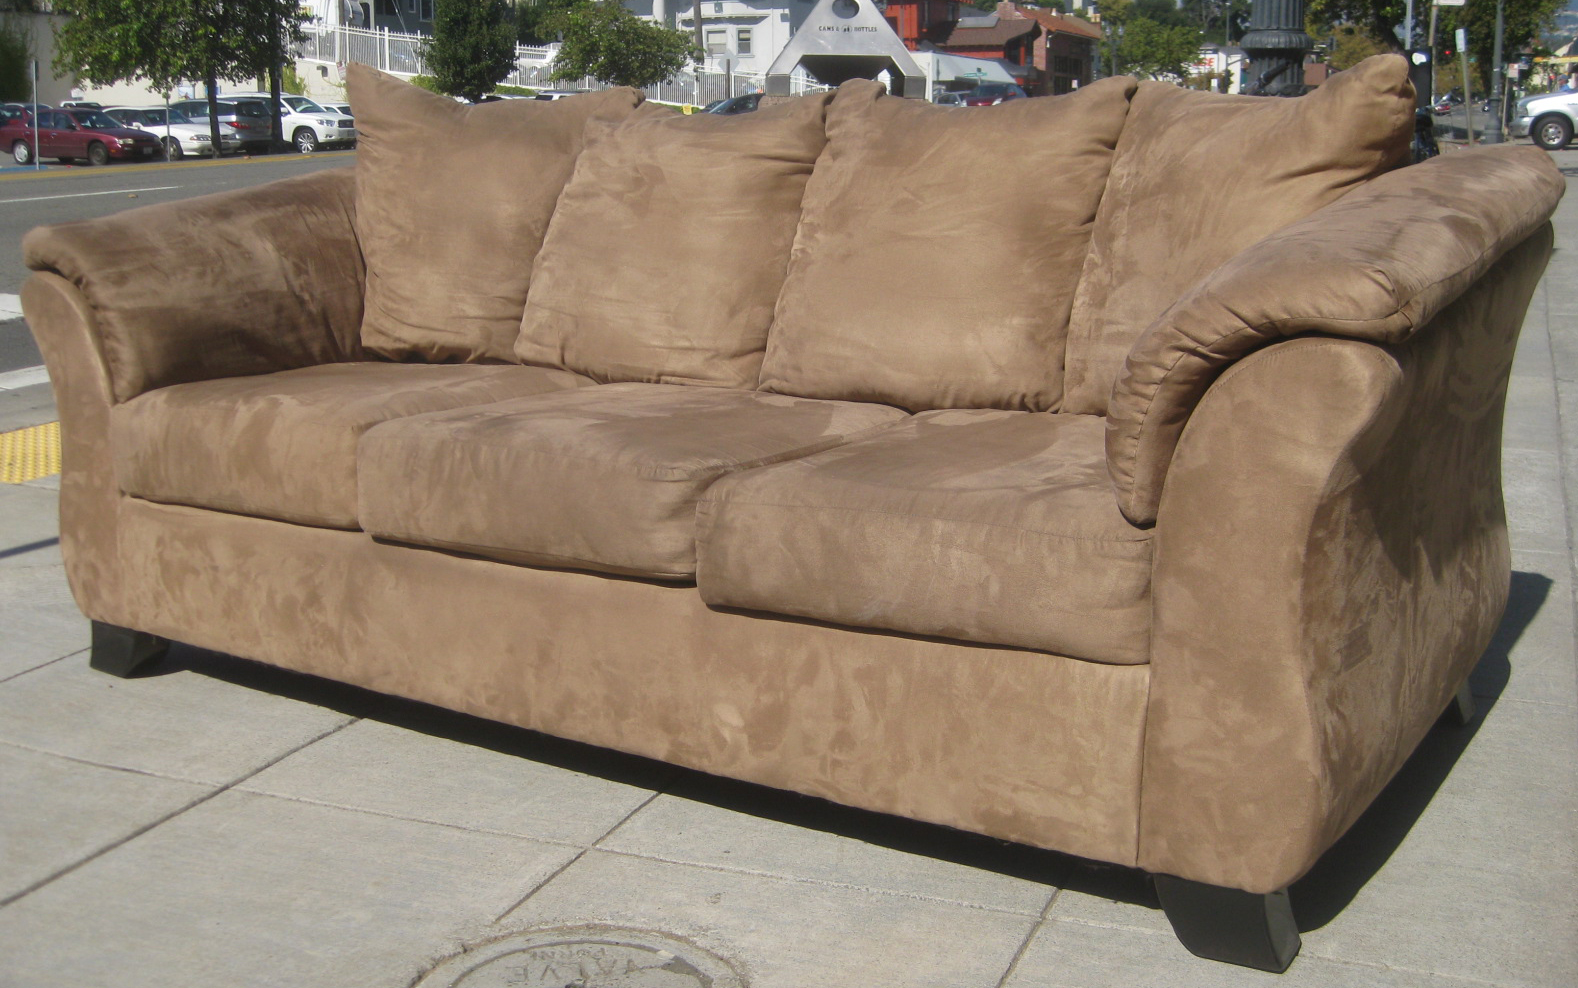 how to spot clean a couch